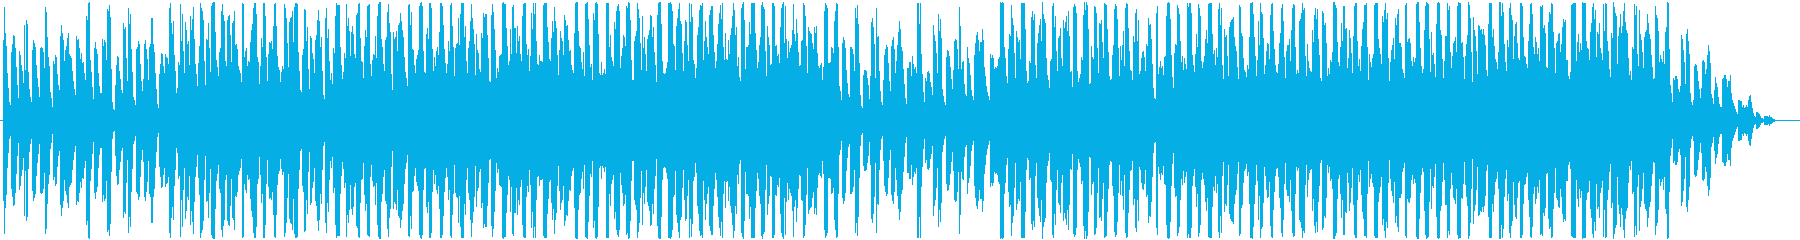 Fantastic EDM with the image of the deep sea's reproduced waveform